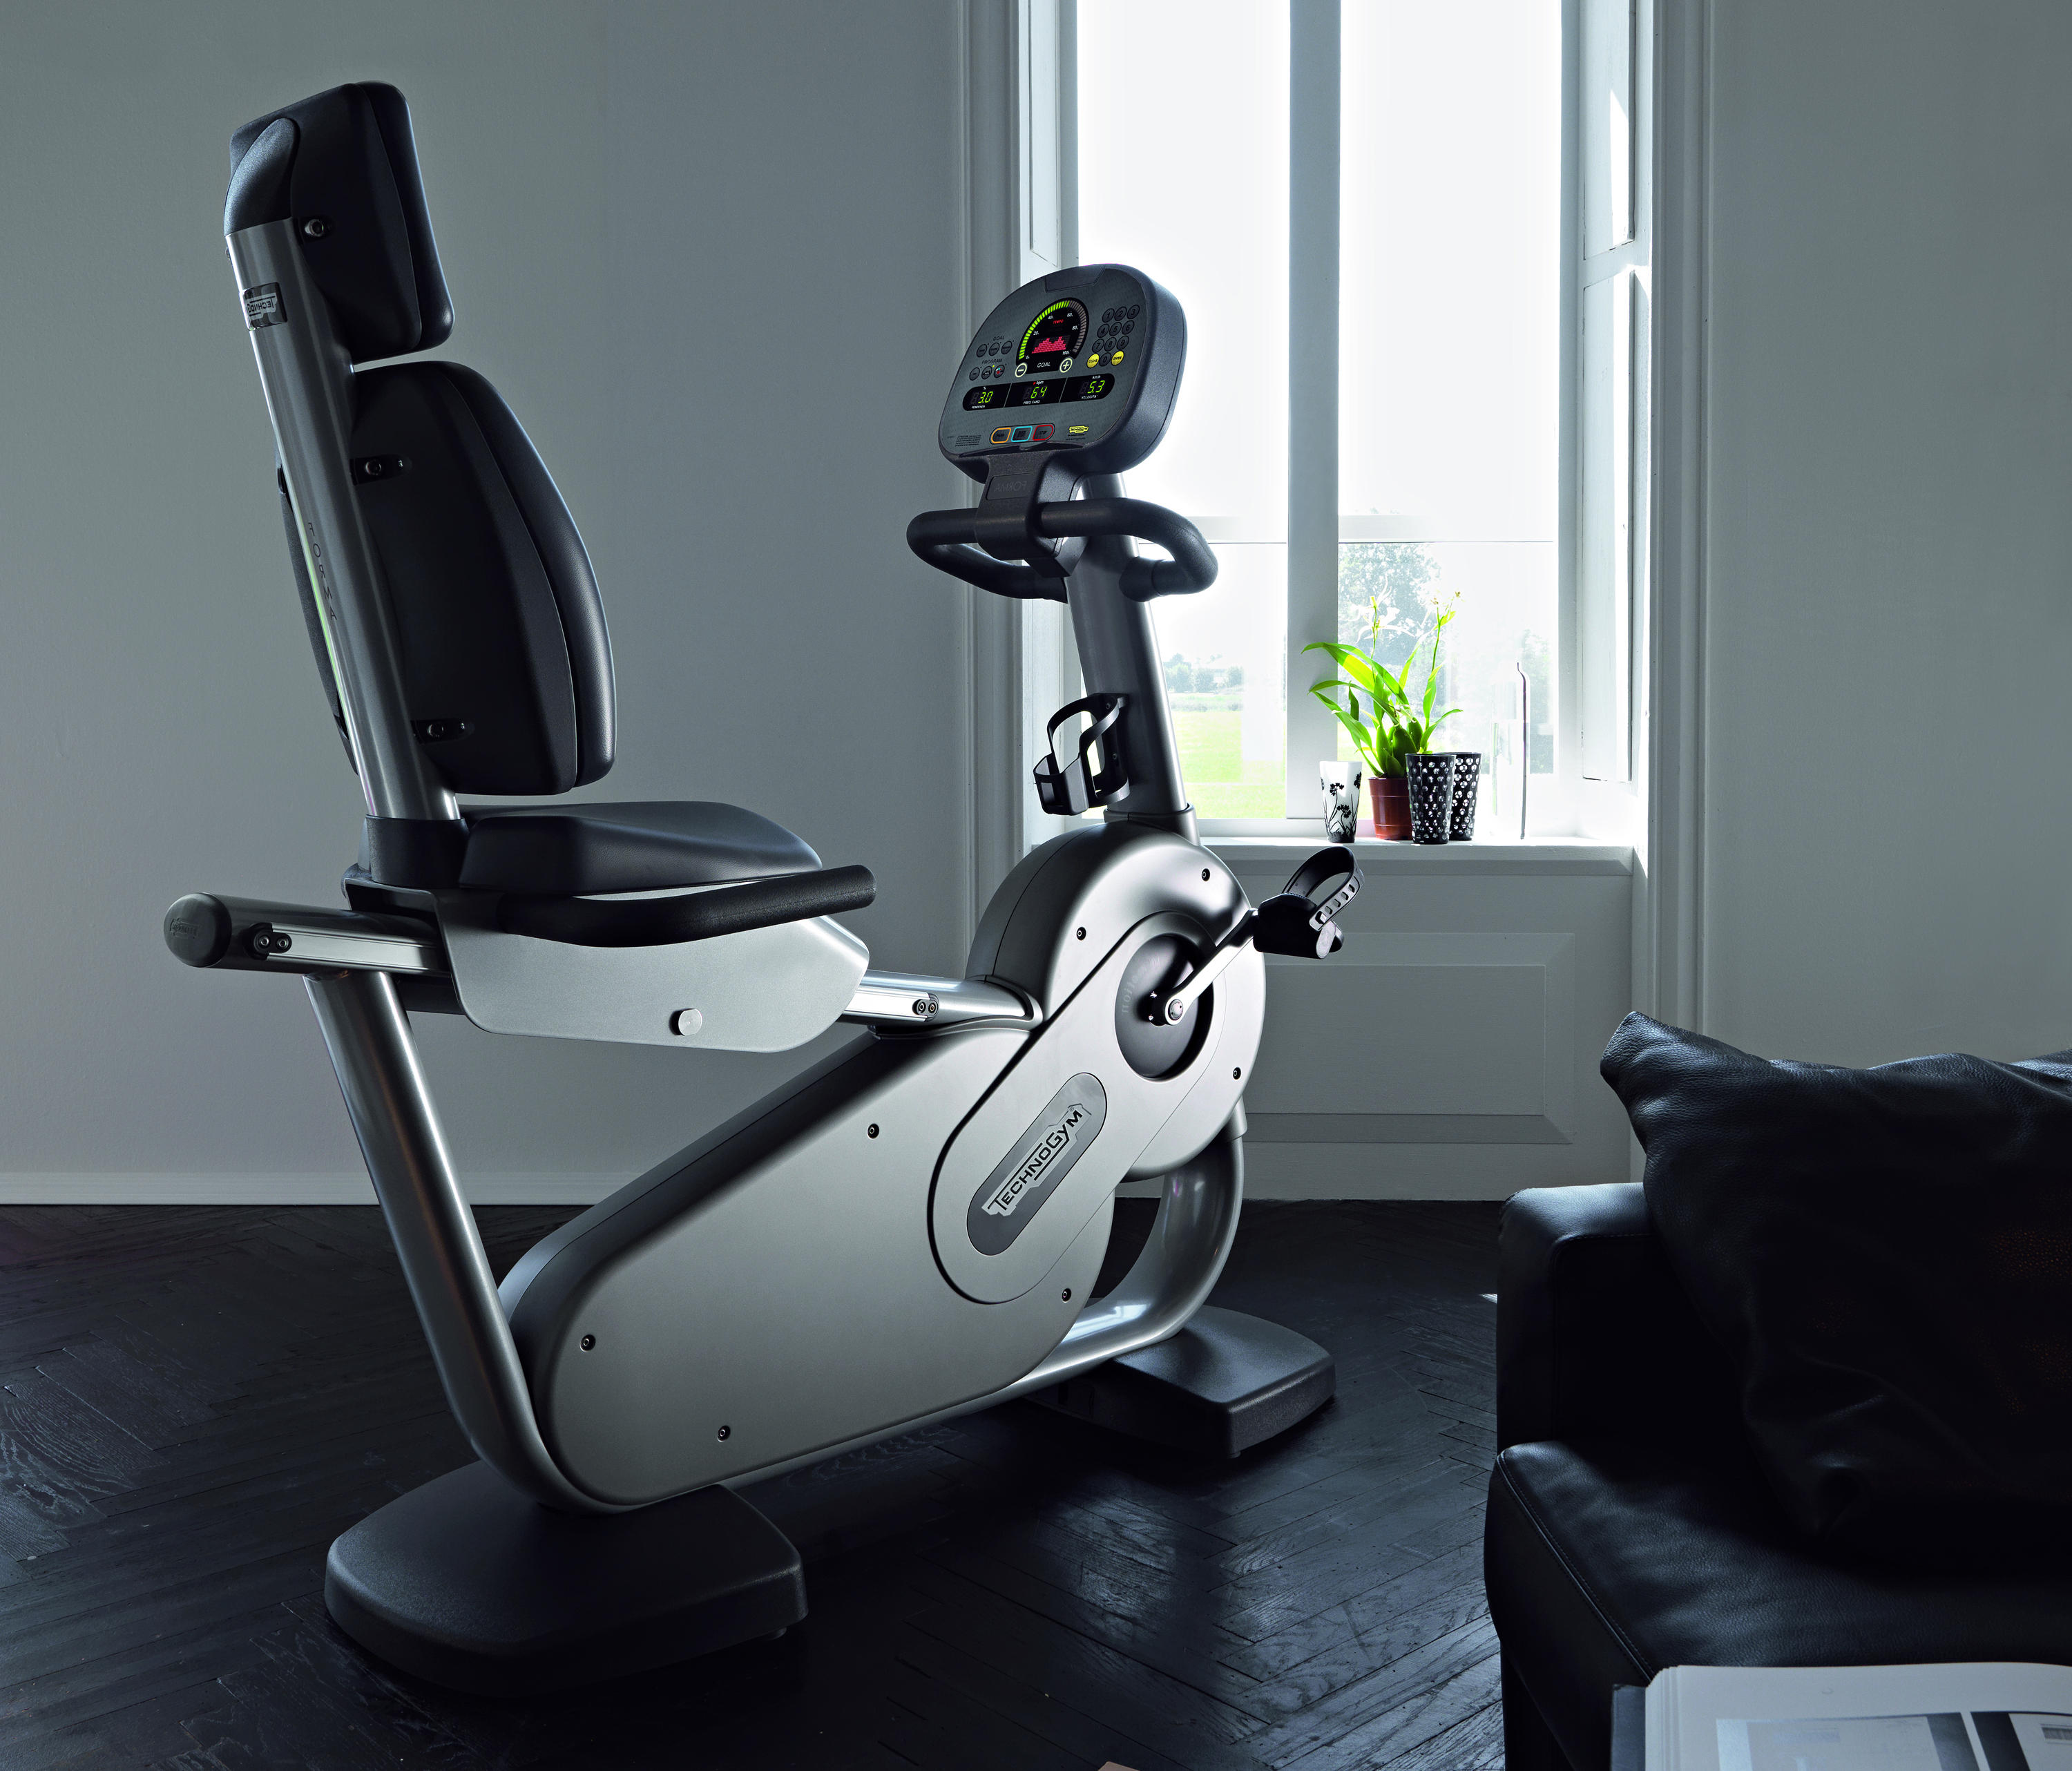 spazio forma fitness equipment from technogym architonic. Black Bedroom Furniture Sets. Home Design Ideas